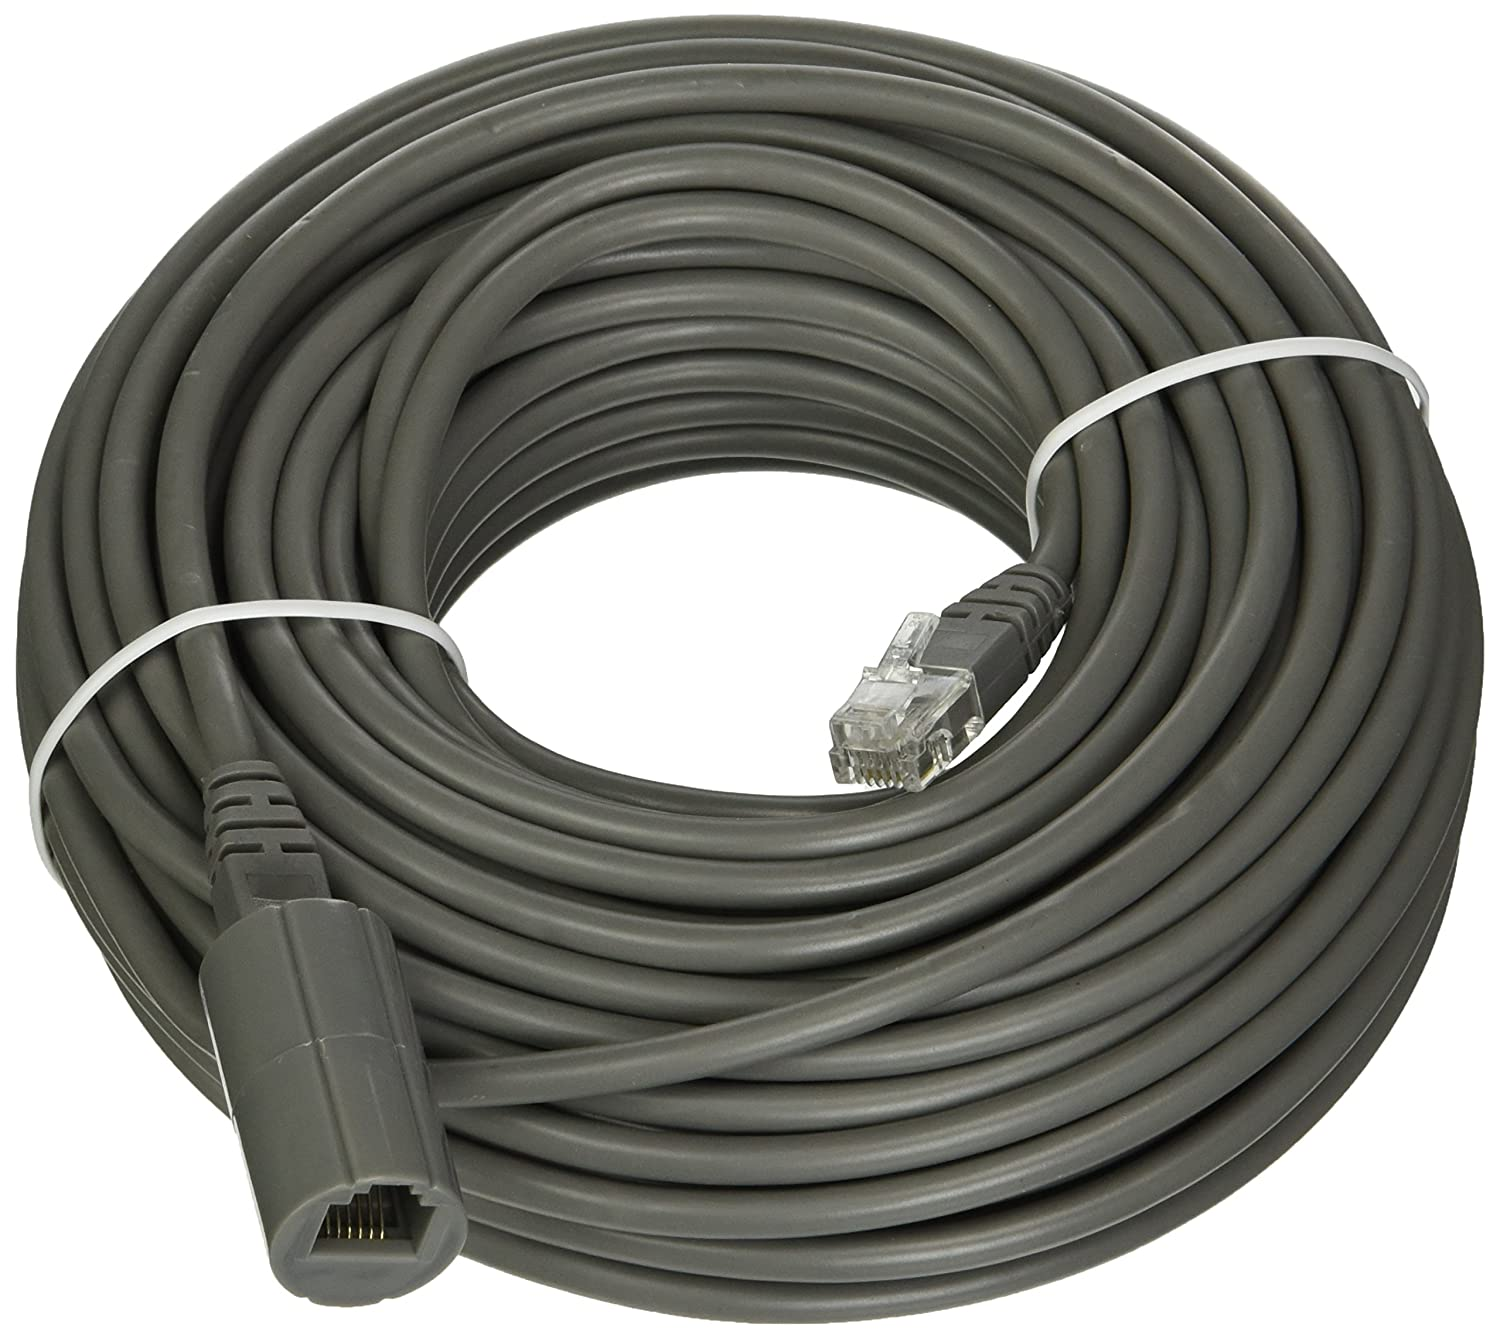 Revo America 200 Feet Rj12 Cable With Coupler Jack Wiring Diagram R200rj12c Grey Computer Ethernet Cables Camera Photo